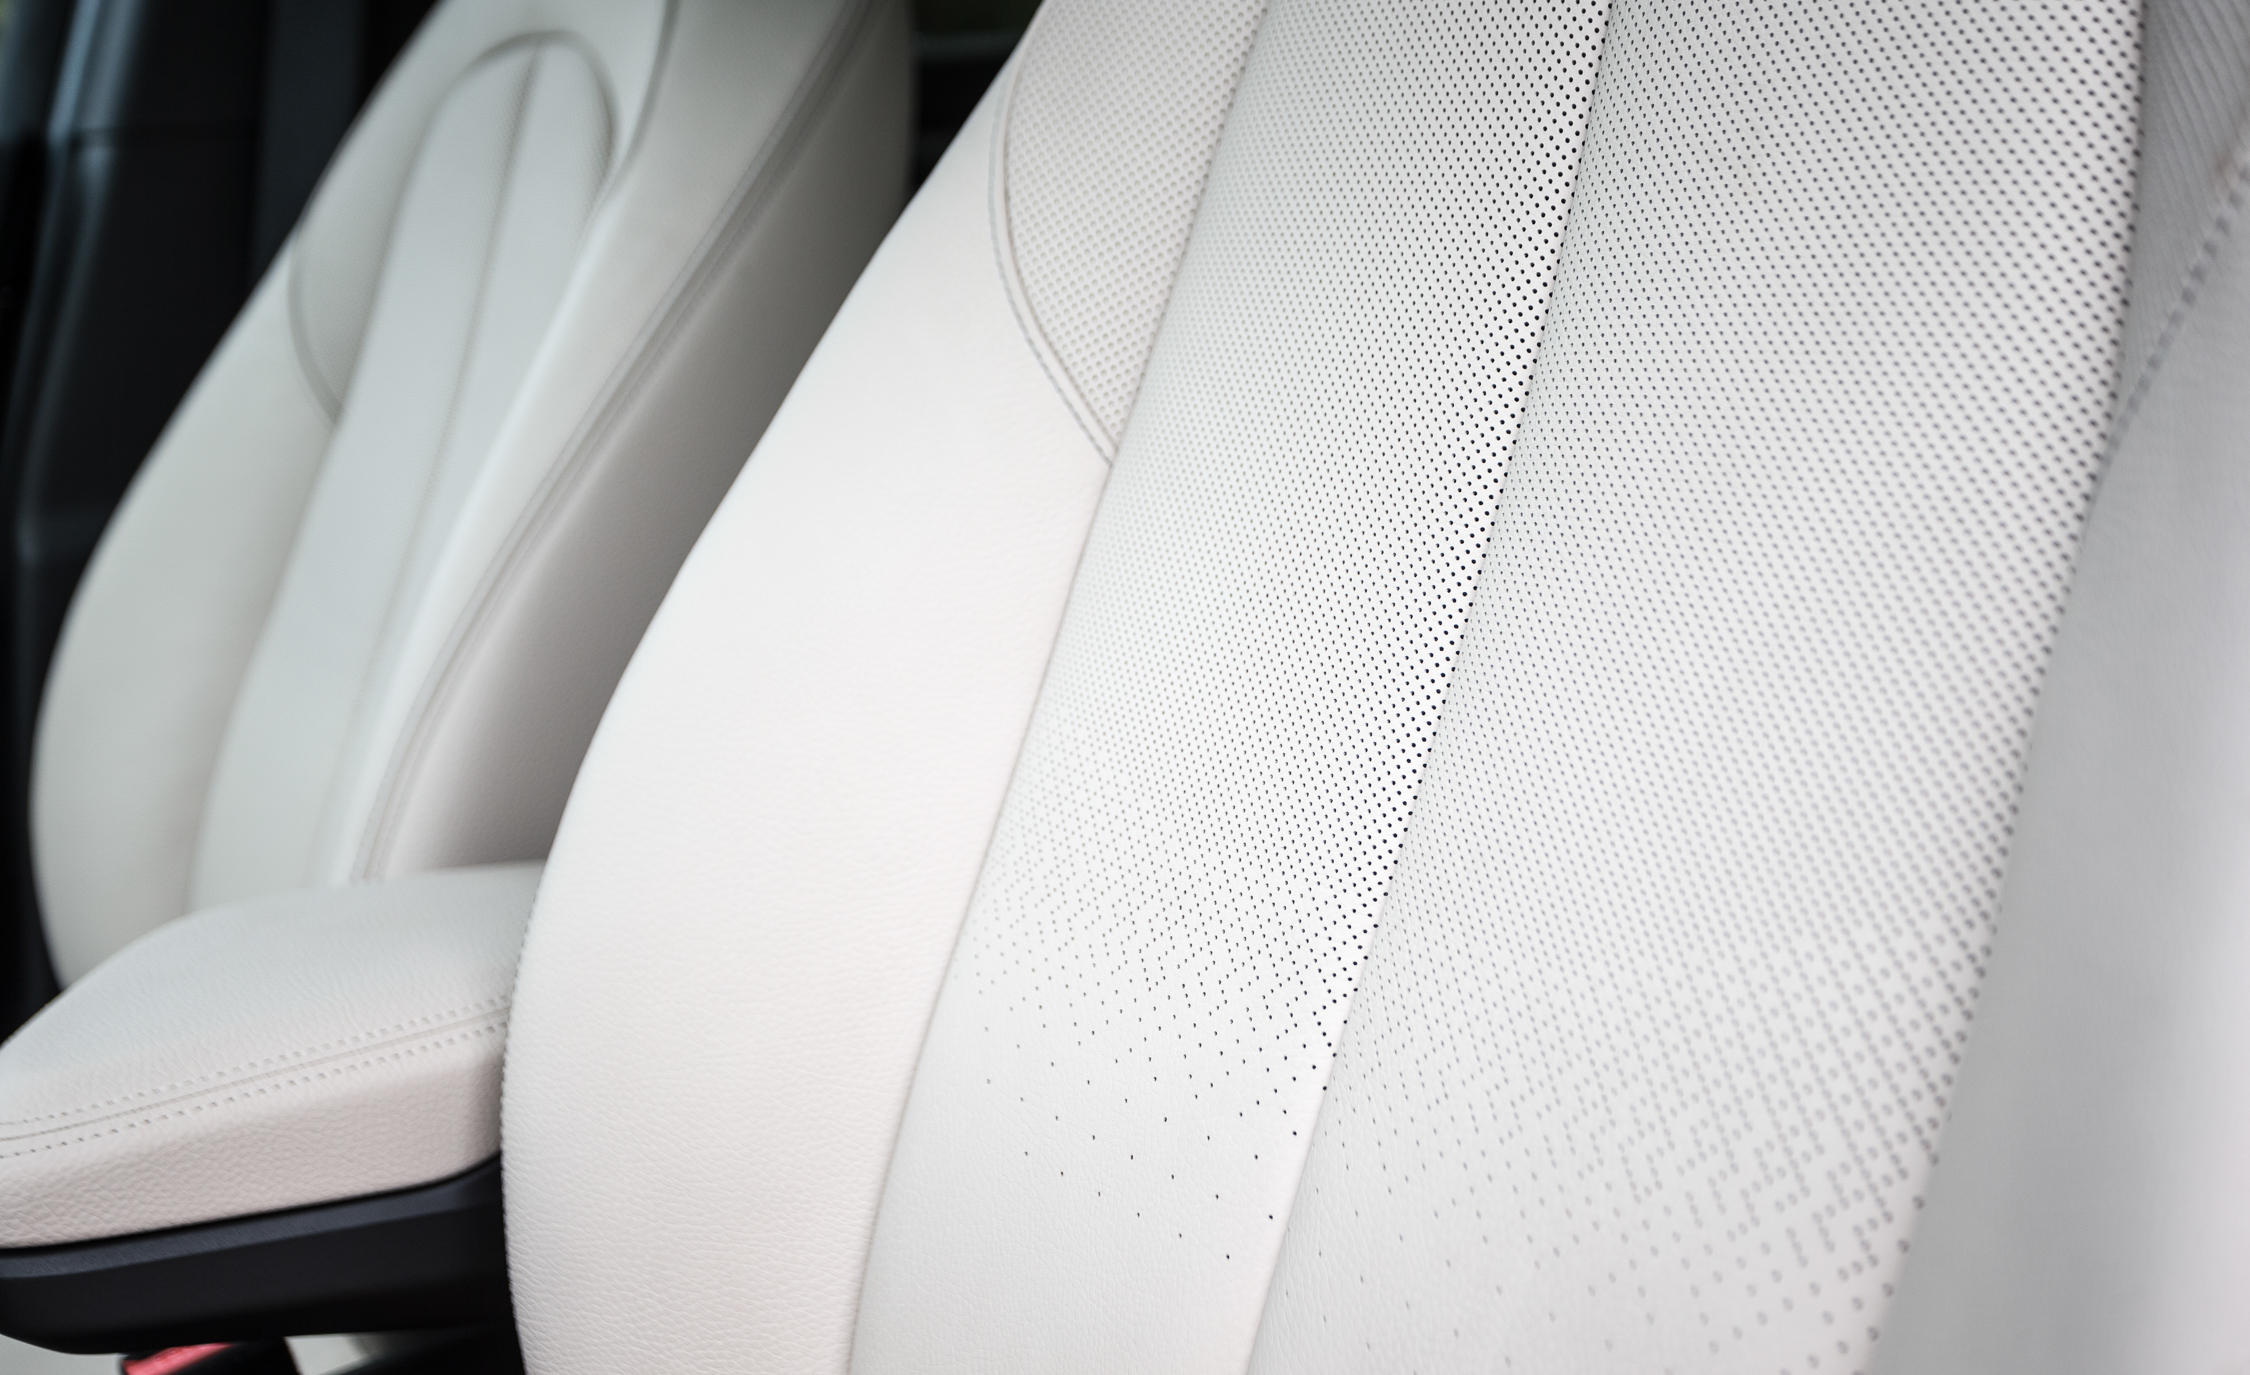 2016 BMW X1 Interior Seats Front Leather Details (Photo 22 of 36)